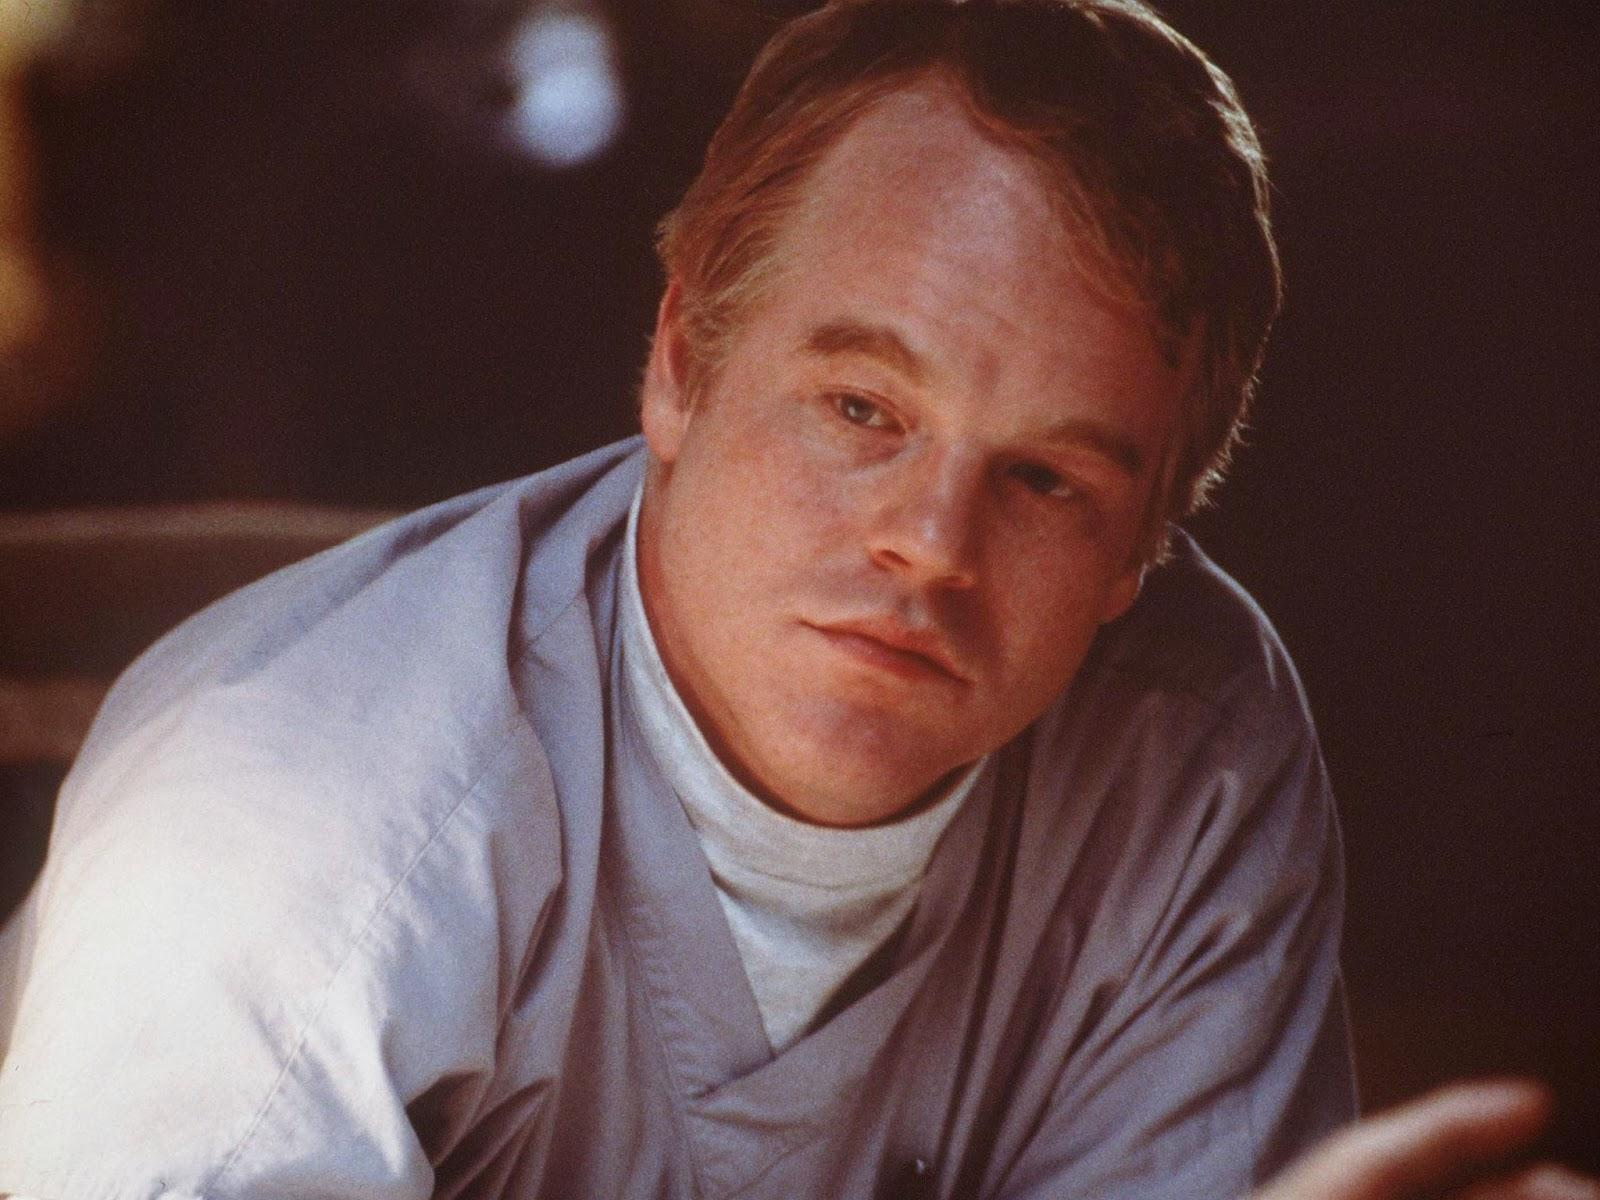 Reflecting on Philip Seymour Hoffman's Enduring Legacy Four Years